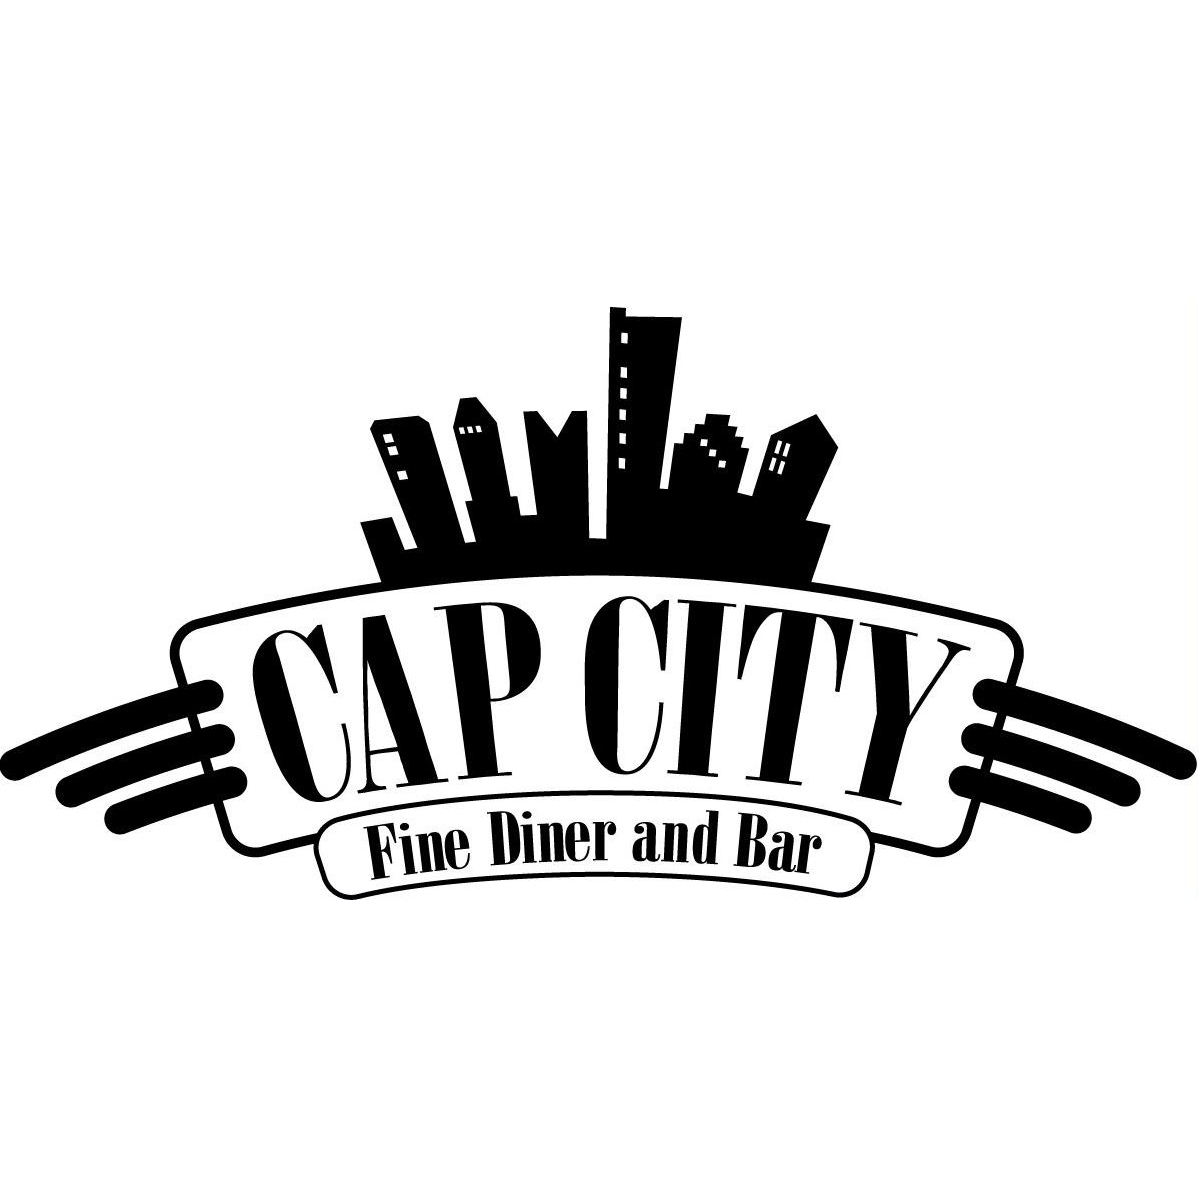 Cap City Fine Diner and Bar